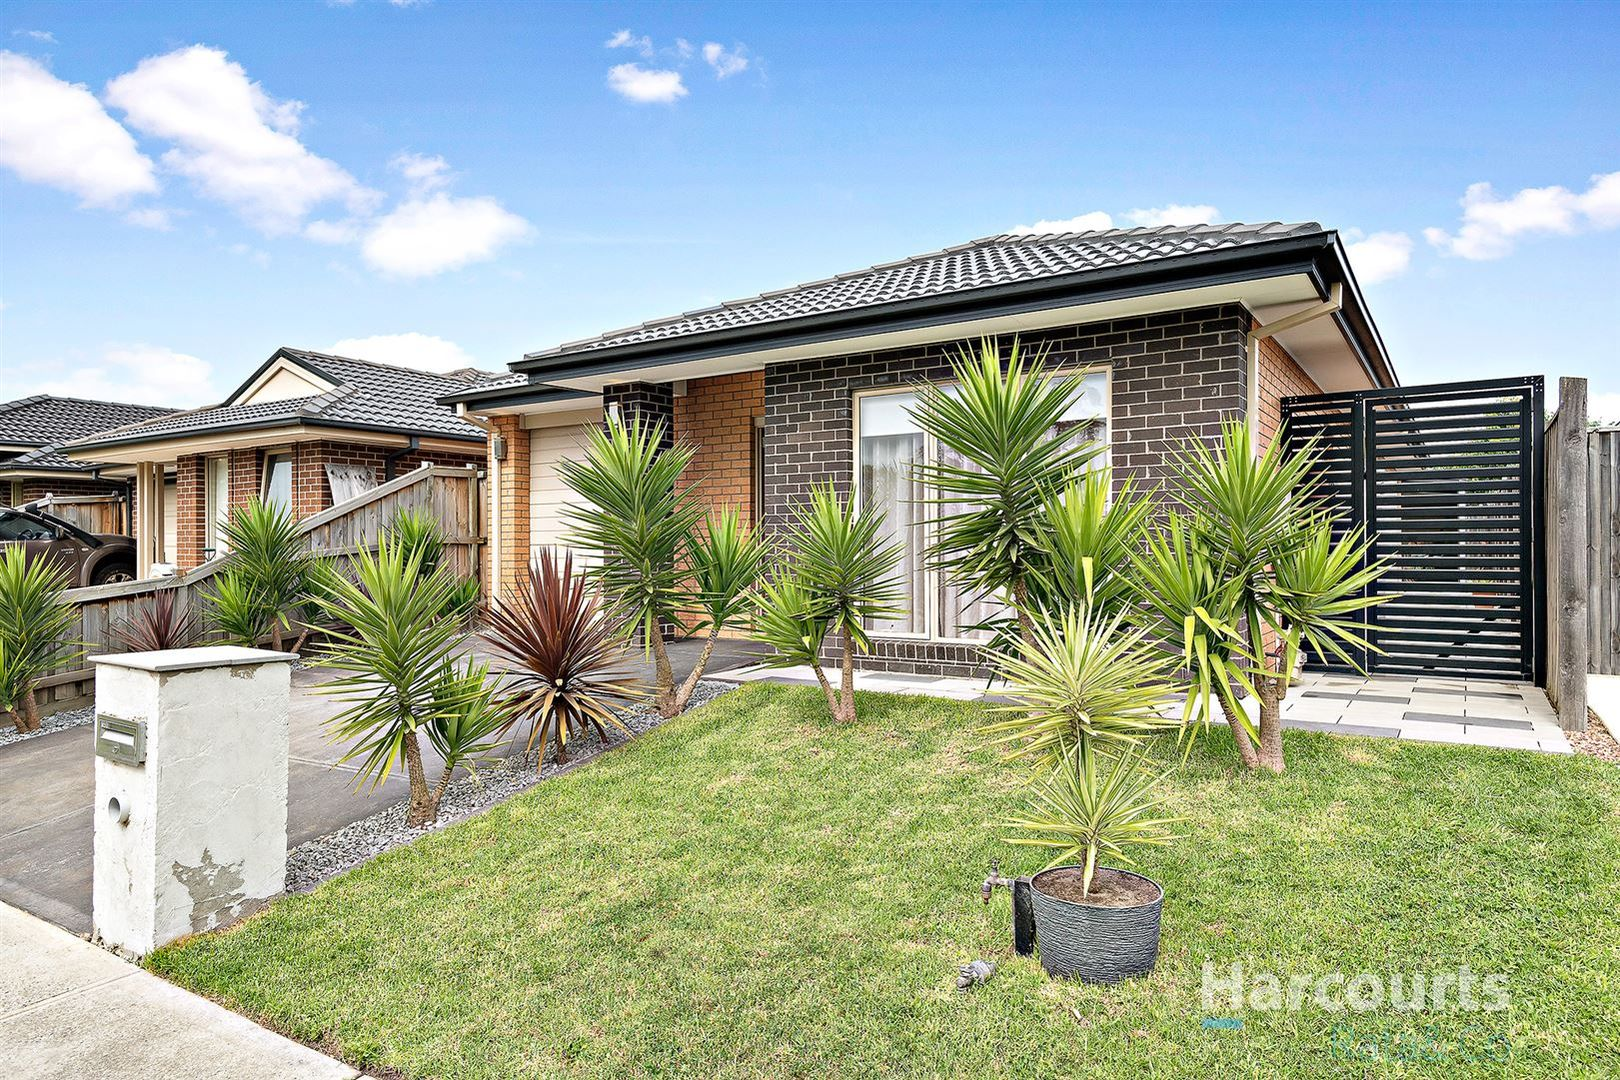 52 Towerhill Ave, Doreen VIC 3754, Image 0